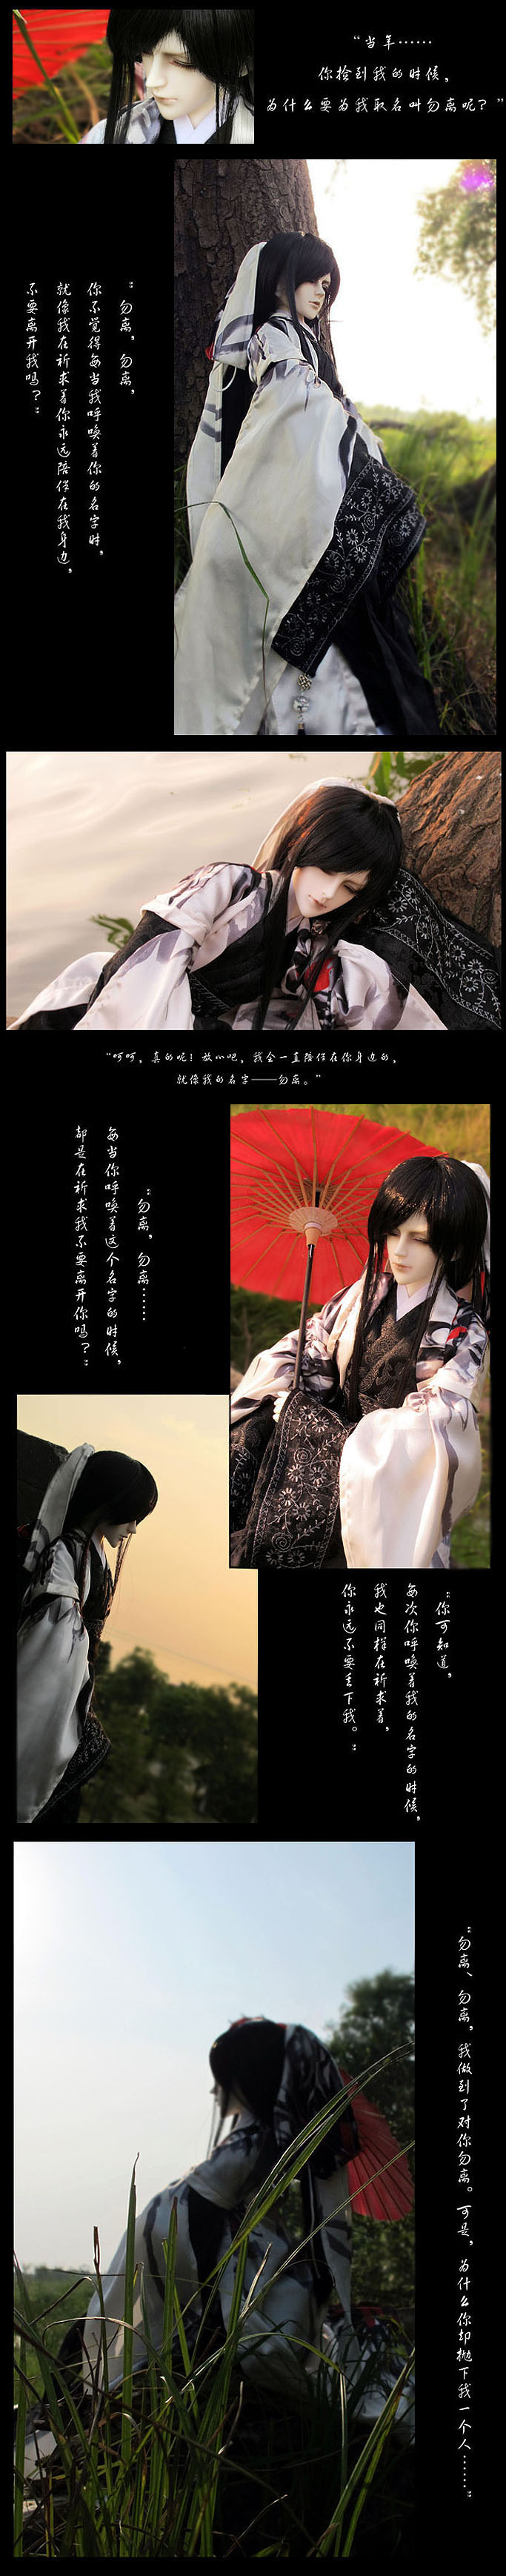 BJD Wuli 62cm boy Boll-jointed doll